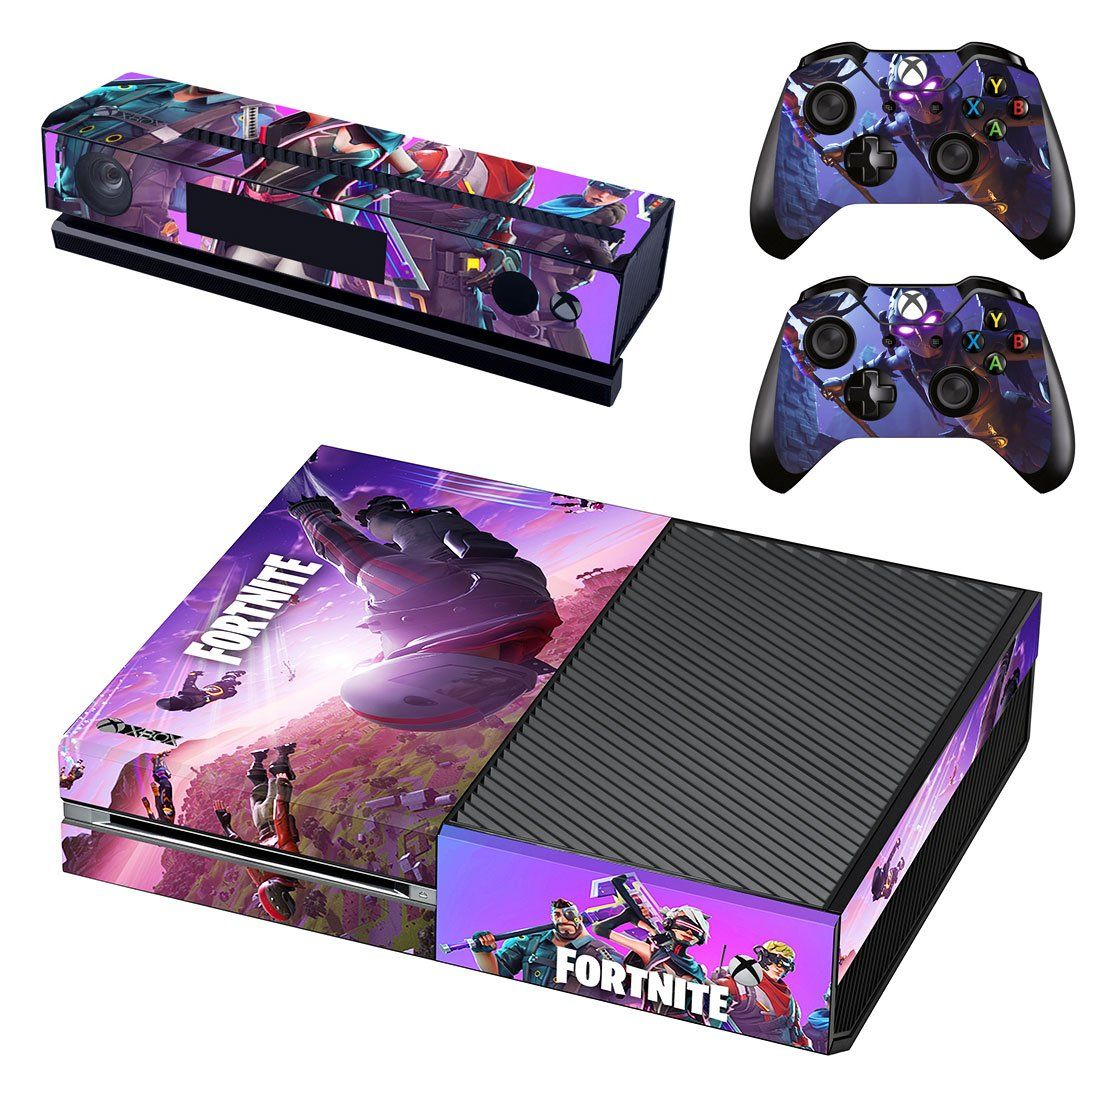 Fortnite Battle Royale Microsoft Xbox One Skin Sticker Decals For Console And 2 Controllers Free Shipping Xbox One Skin Fortnite Xbox One